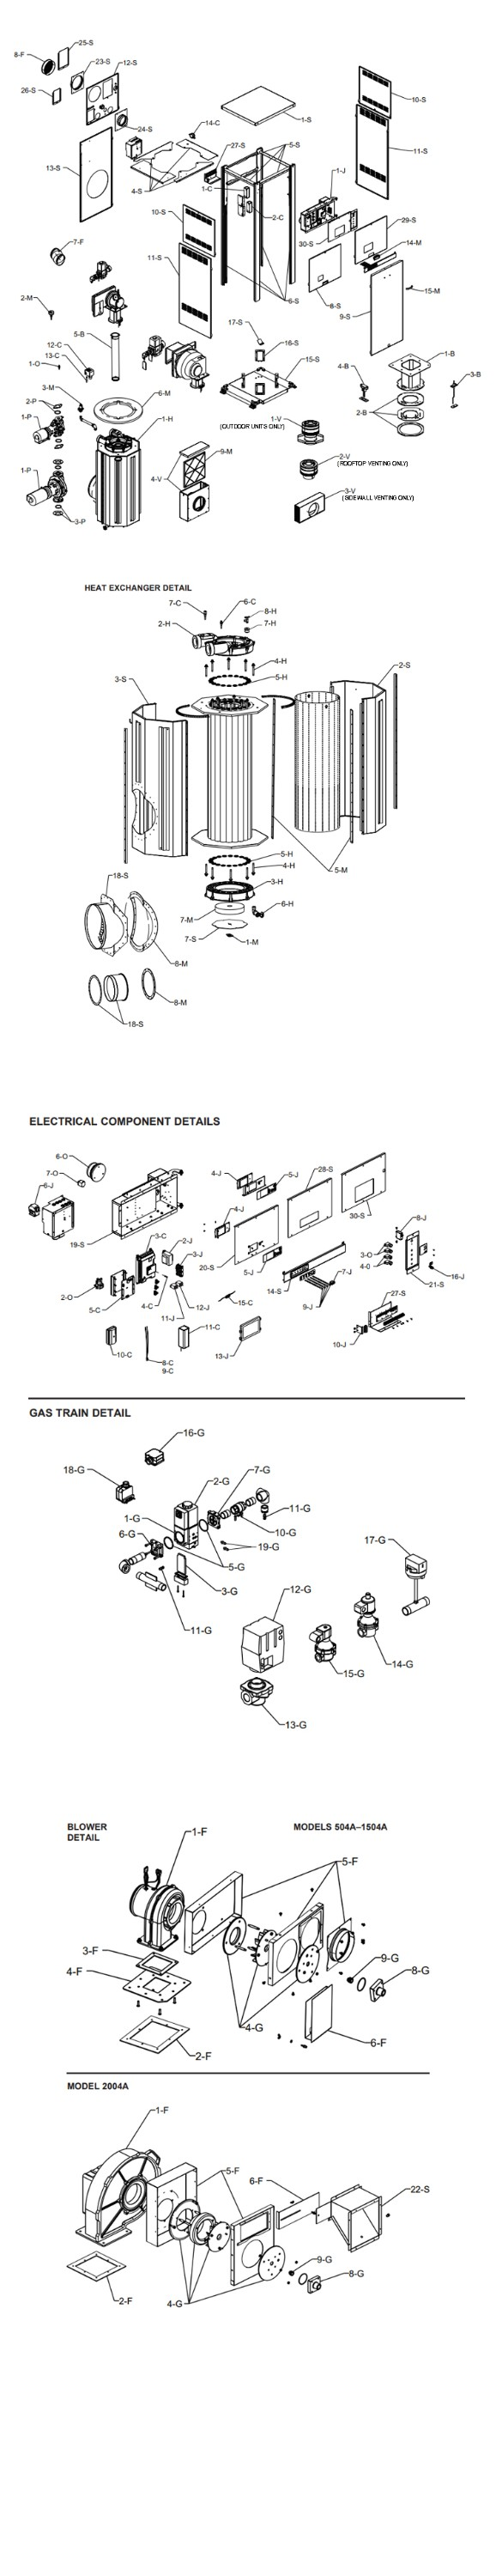 Raypak MVB P-2004A Cold Run Commercial Vertical Swimming Pool Heater with Versa Control and Cold Run | Natural Gas 1,999,000 BTUH | Cupro Nickel Heat Exchanger | 014385 Parts Schematic